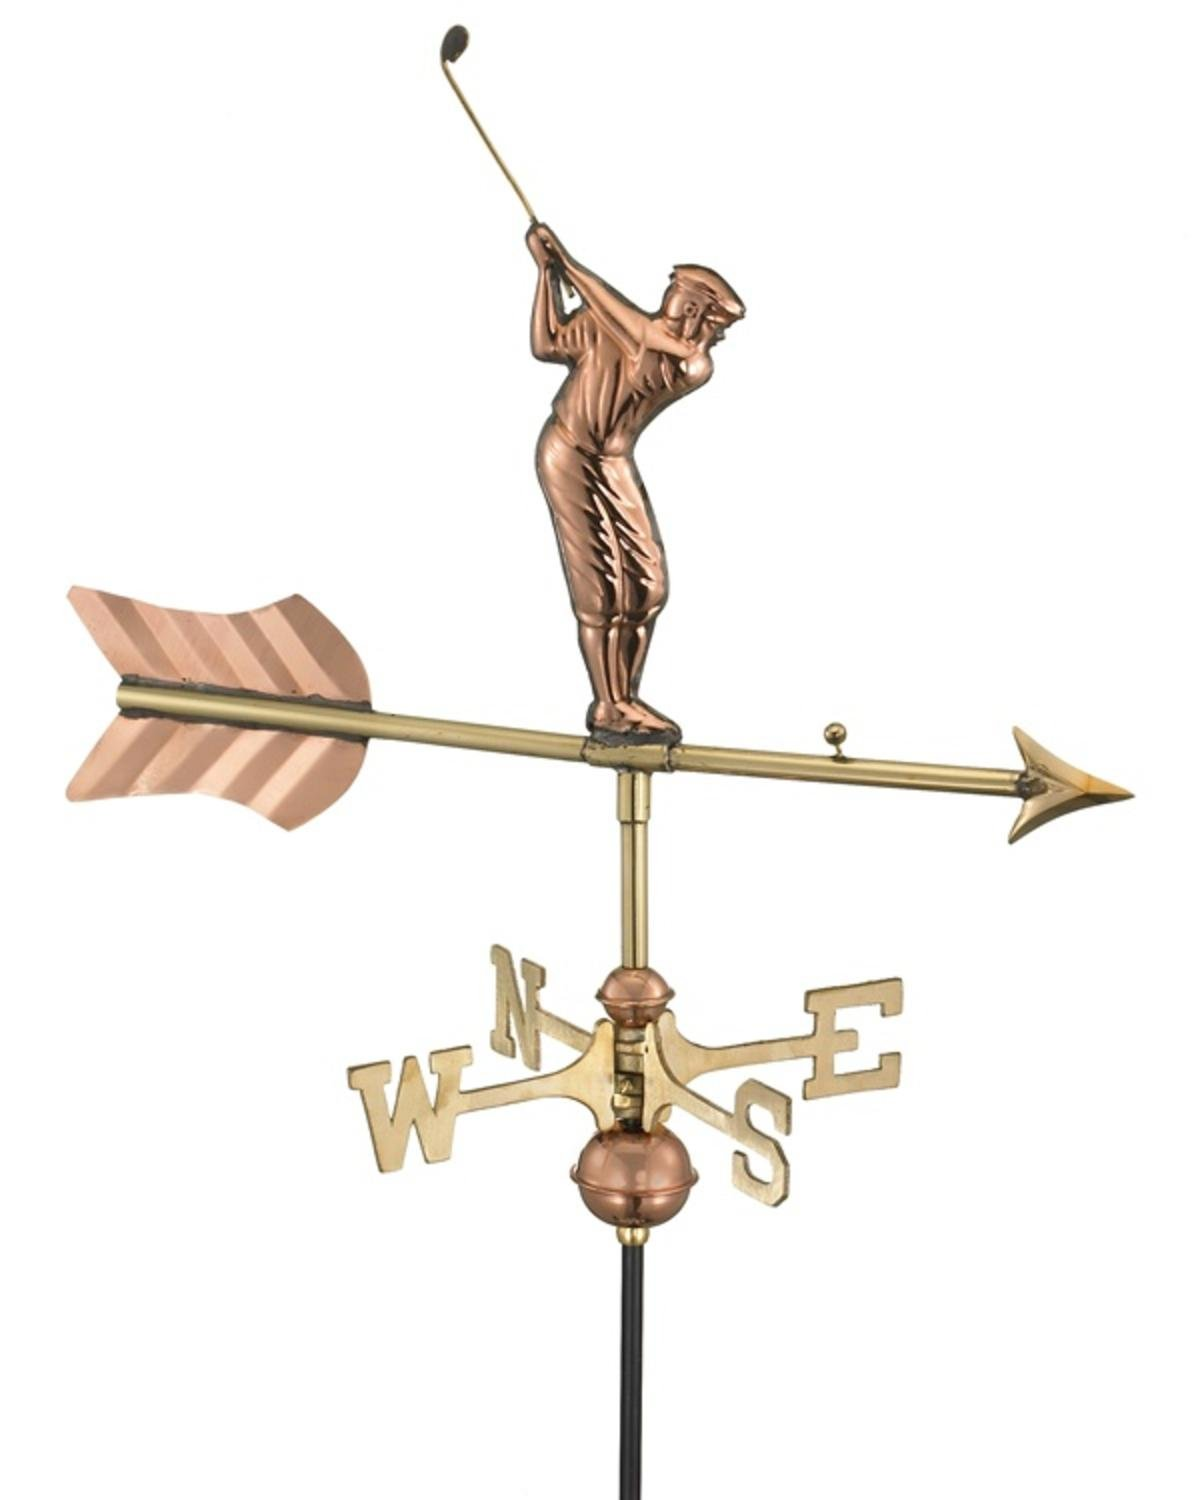 21'' Handcrafted Polished Copper Swinging Golfer Outdoor Weathervane with Garden Pole